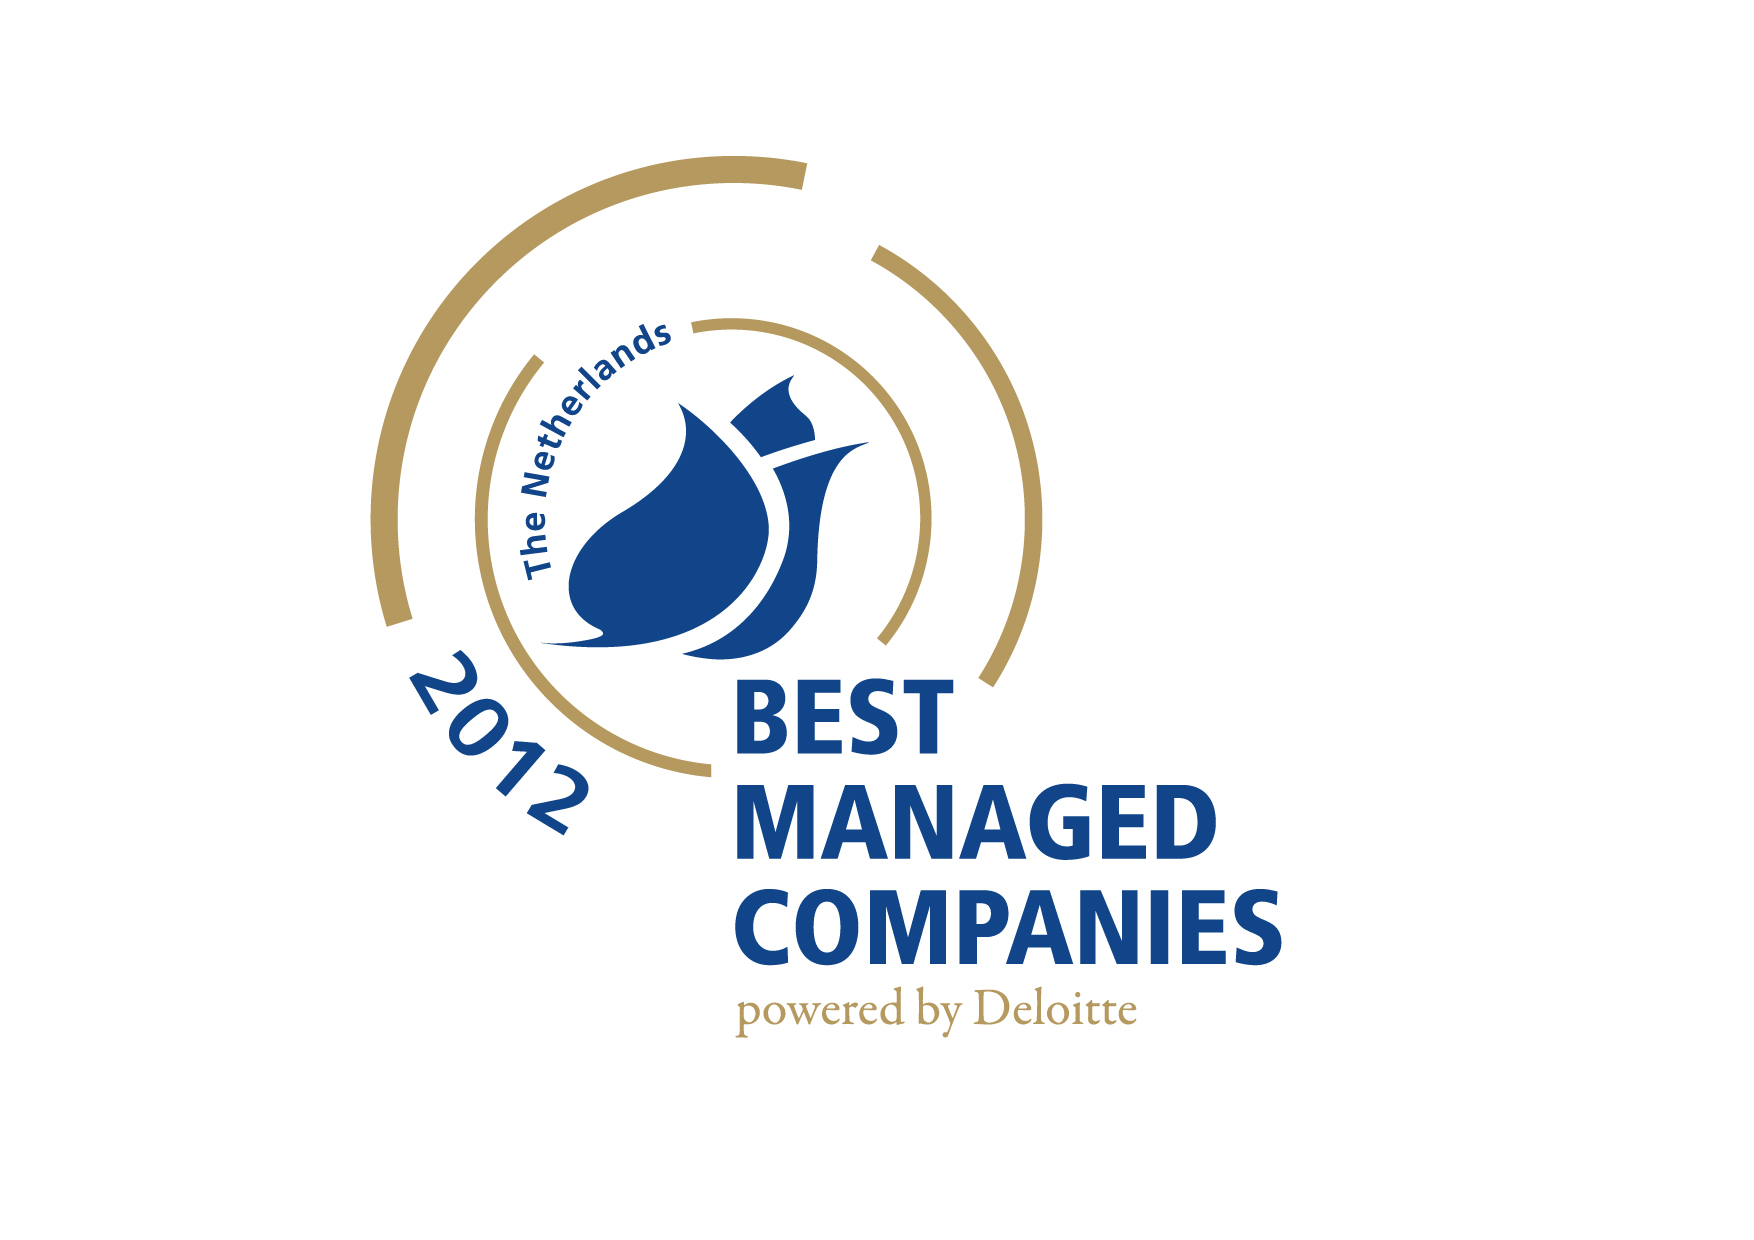 Best Managed Companies 2012